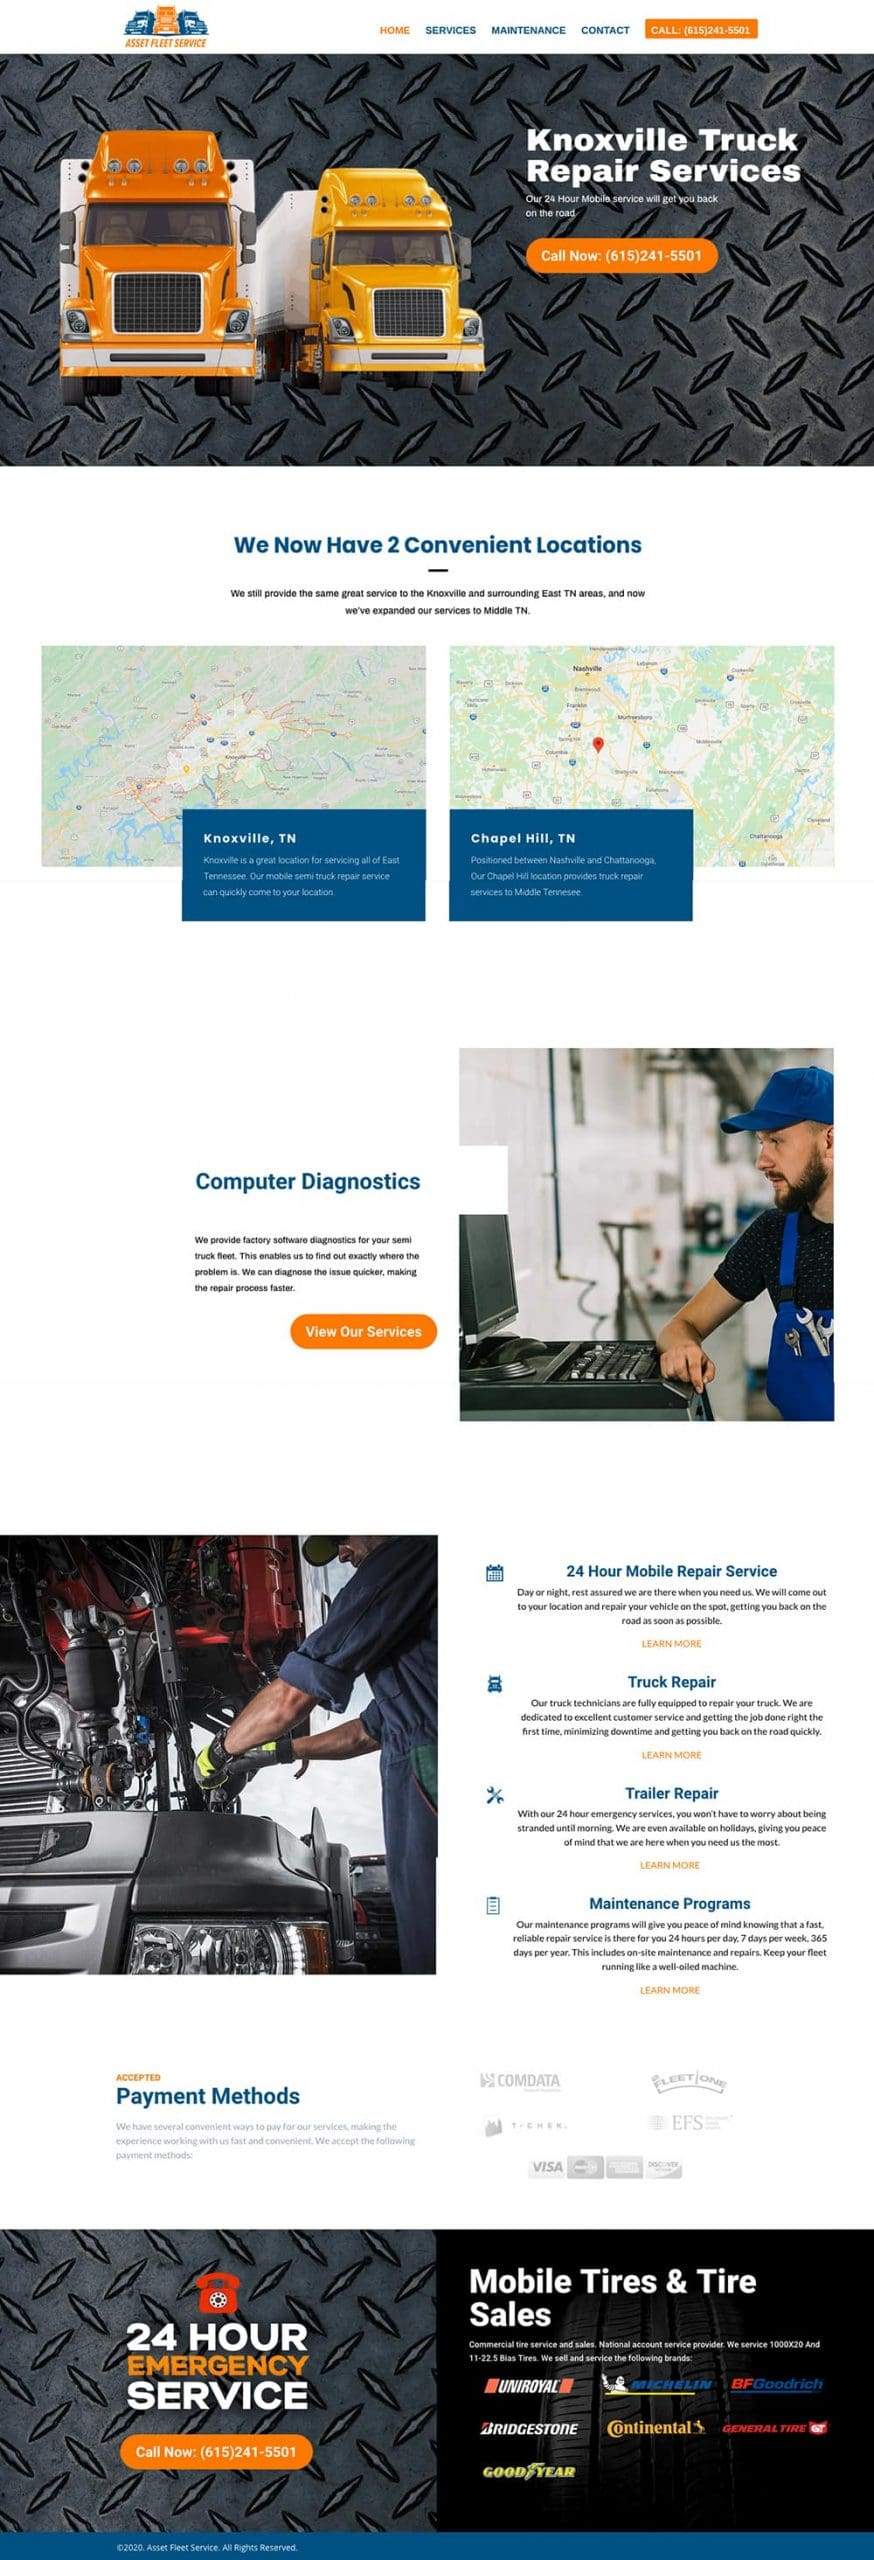 asset fleetservice homepage scaled 1 1